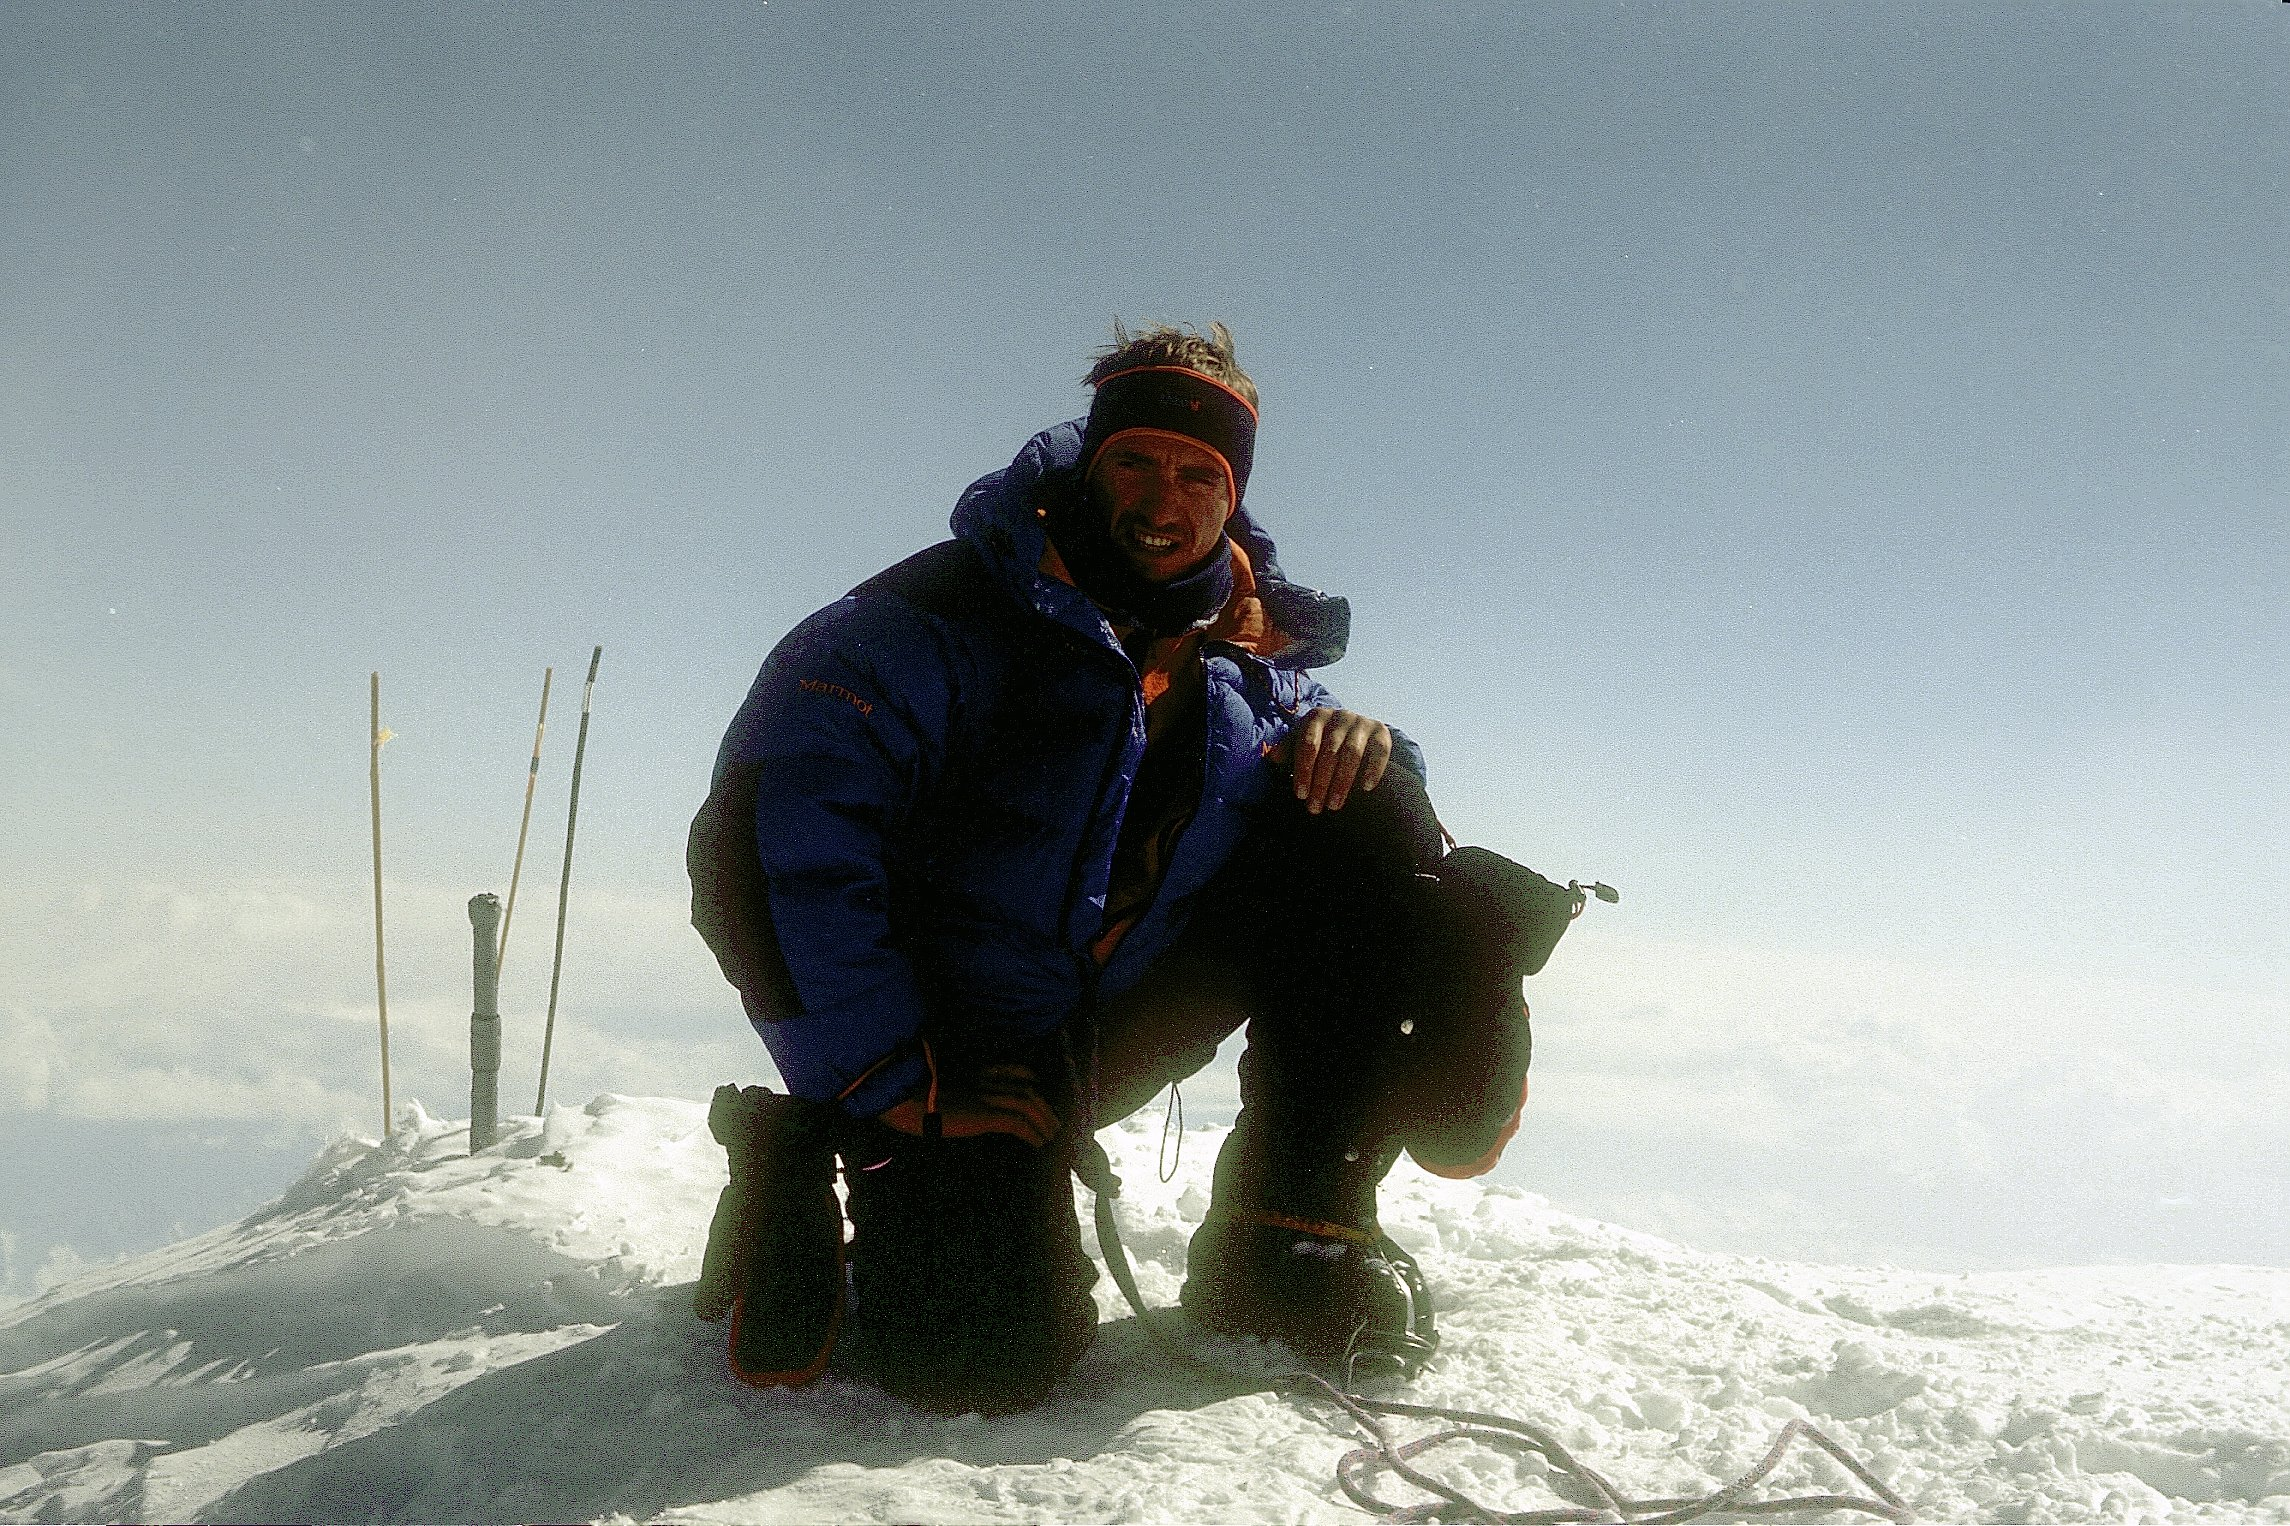 1999 – Alaska                                                      Mt. MC. KINLEY 6194 m.